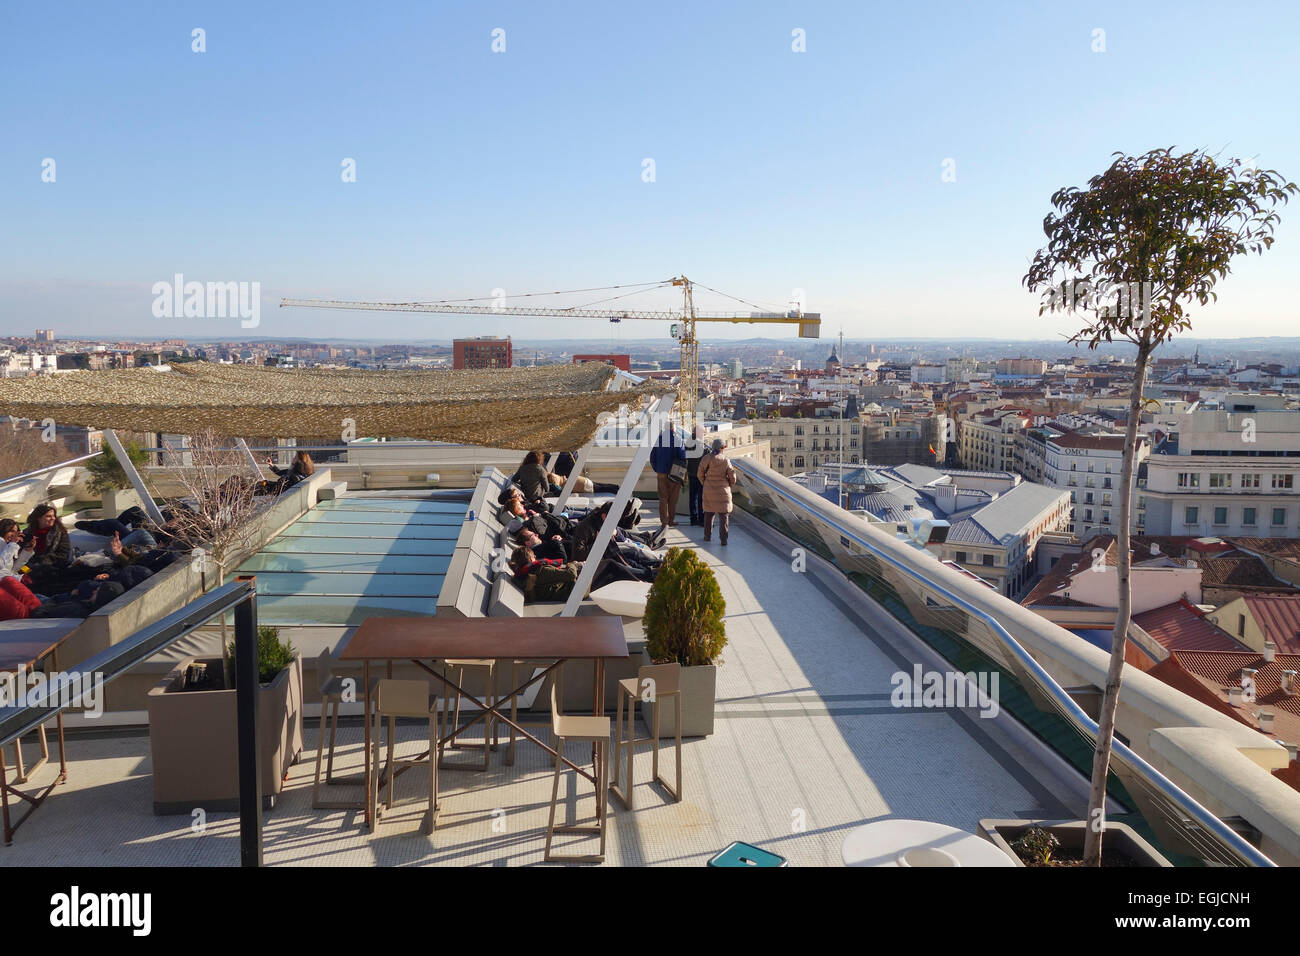 Visitors Relaxing On Rooftop Terrace Loungers Of Circulo De